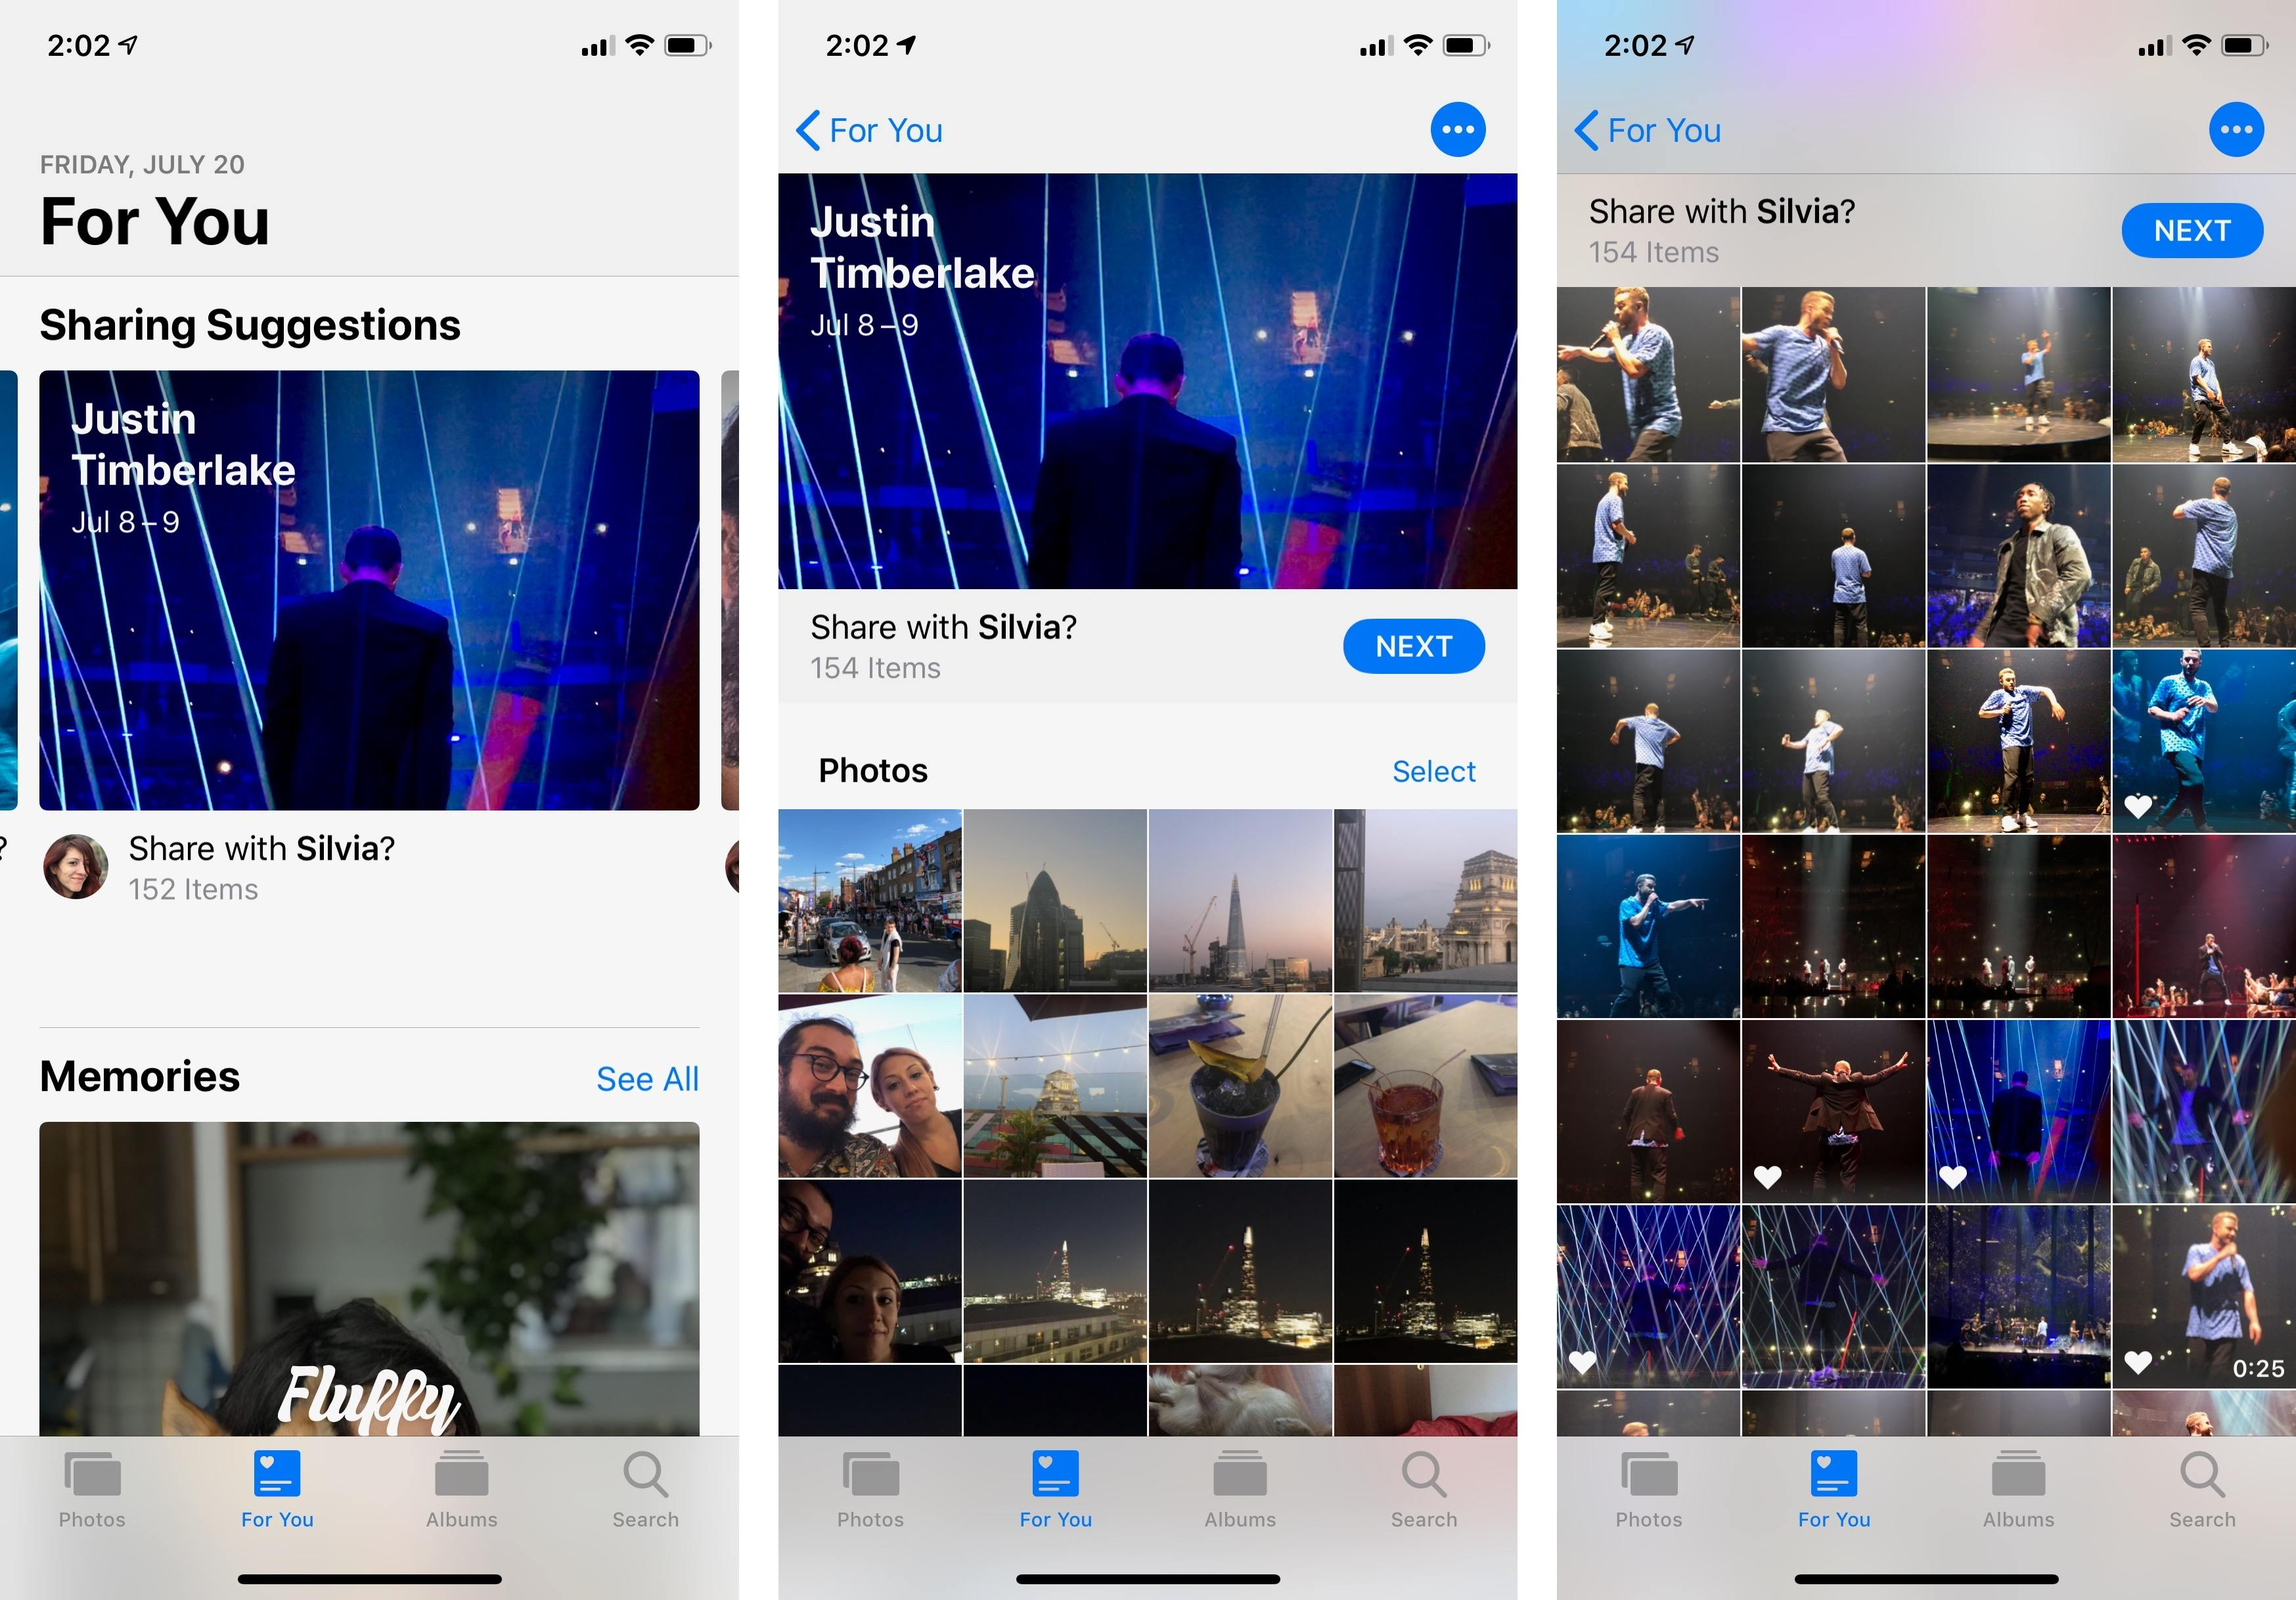 Photos for iOS 12 has an index of public events such as concerts, which become sharing suggestions if you took pictures at the event. This kind of built-in intelligence is remarkable.